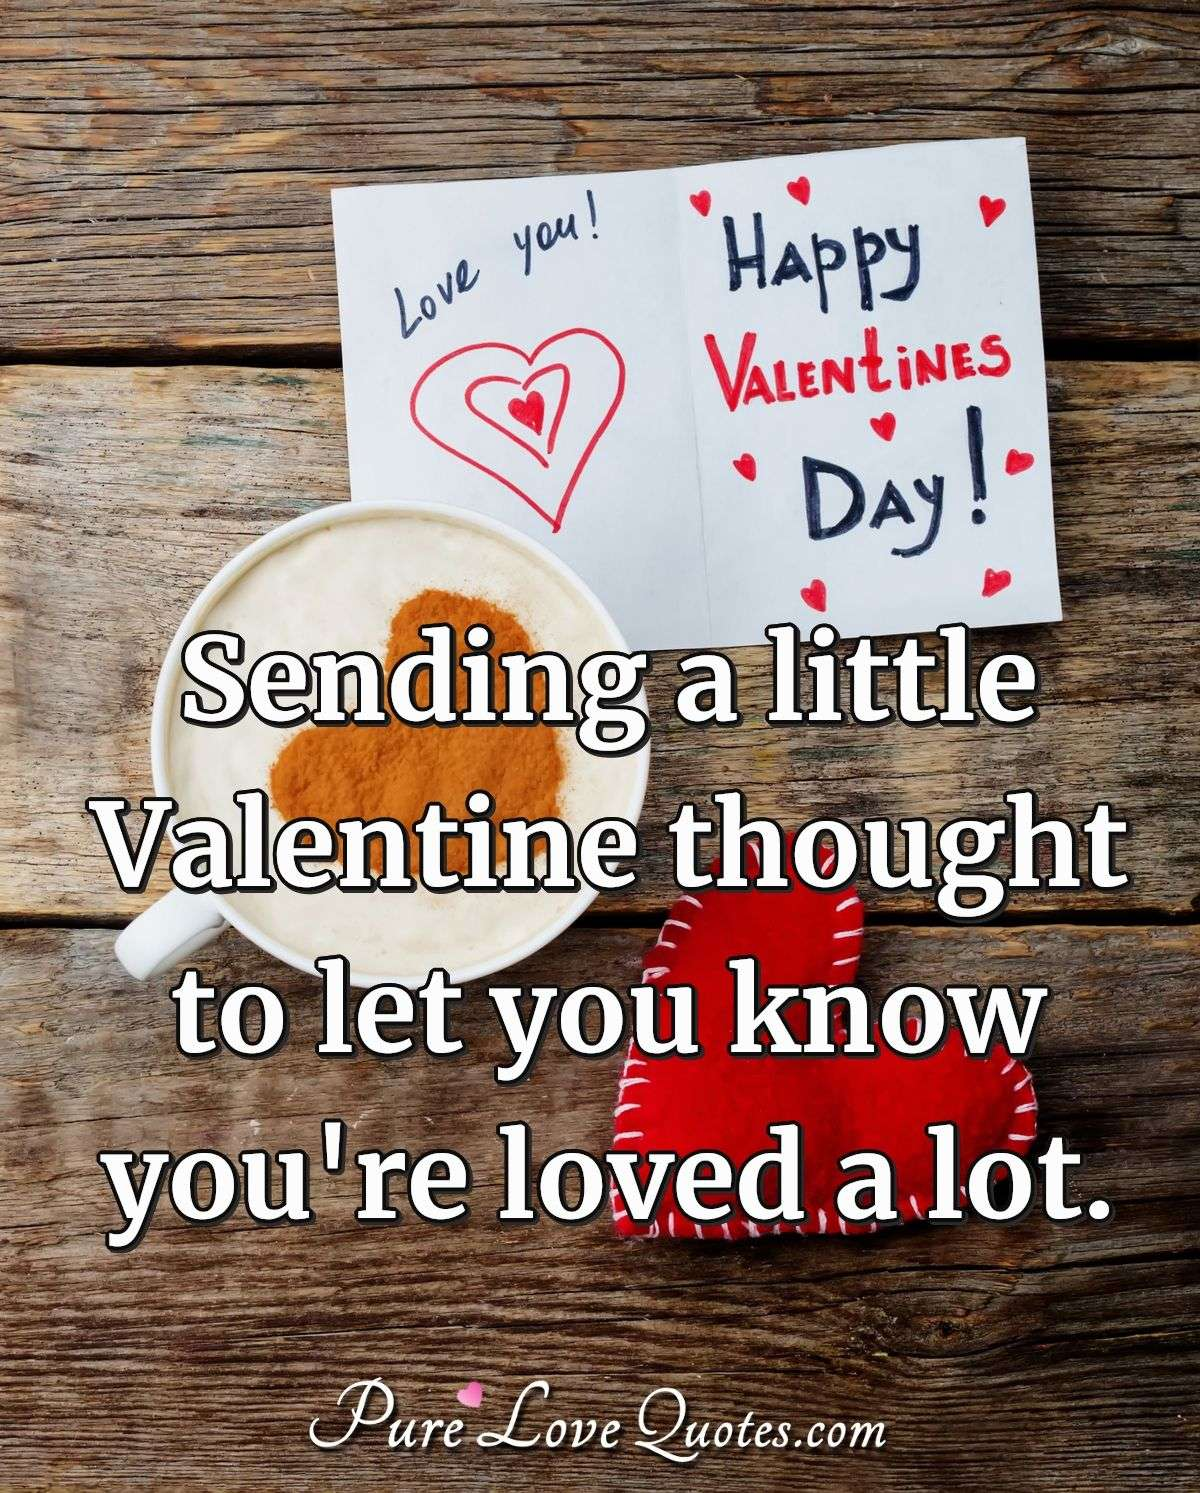 Sending a little Valentine thought to let you know you're loved a lot. - Anonymous